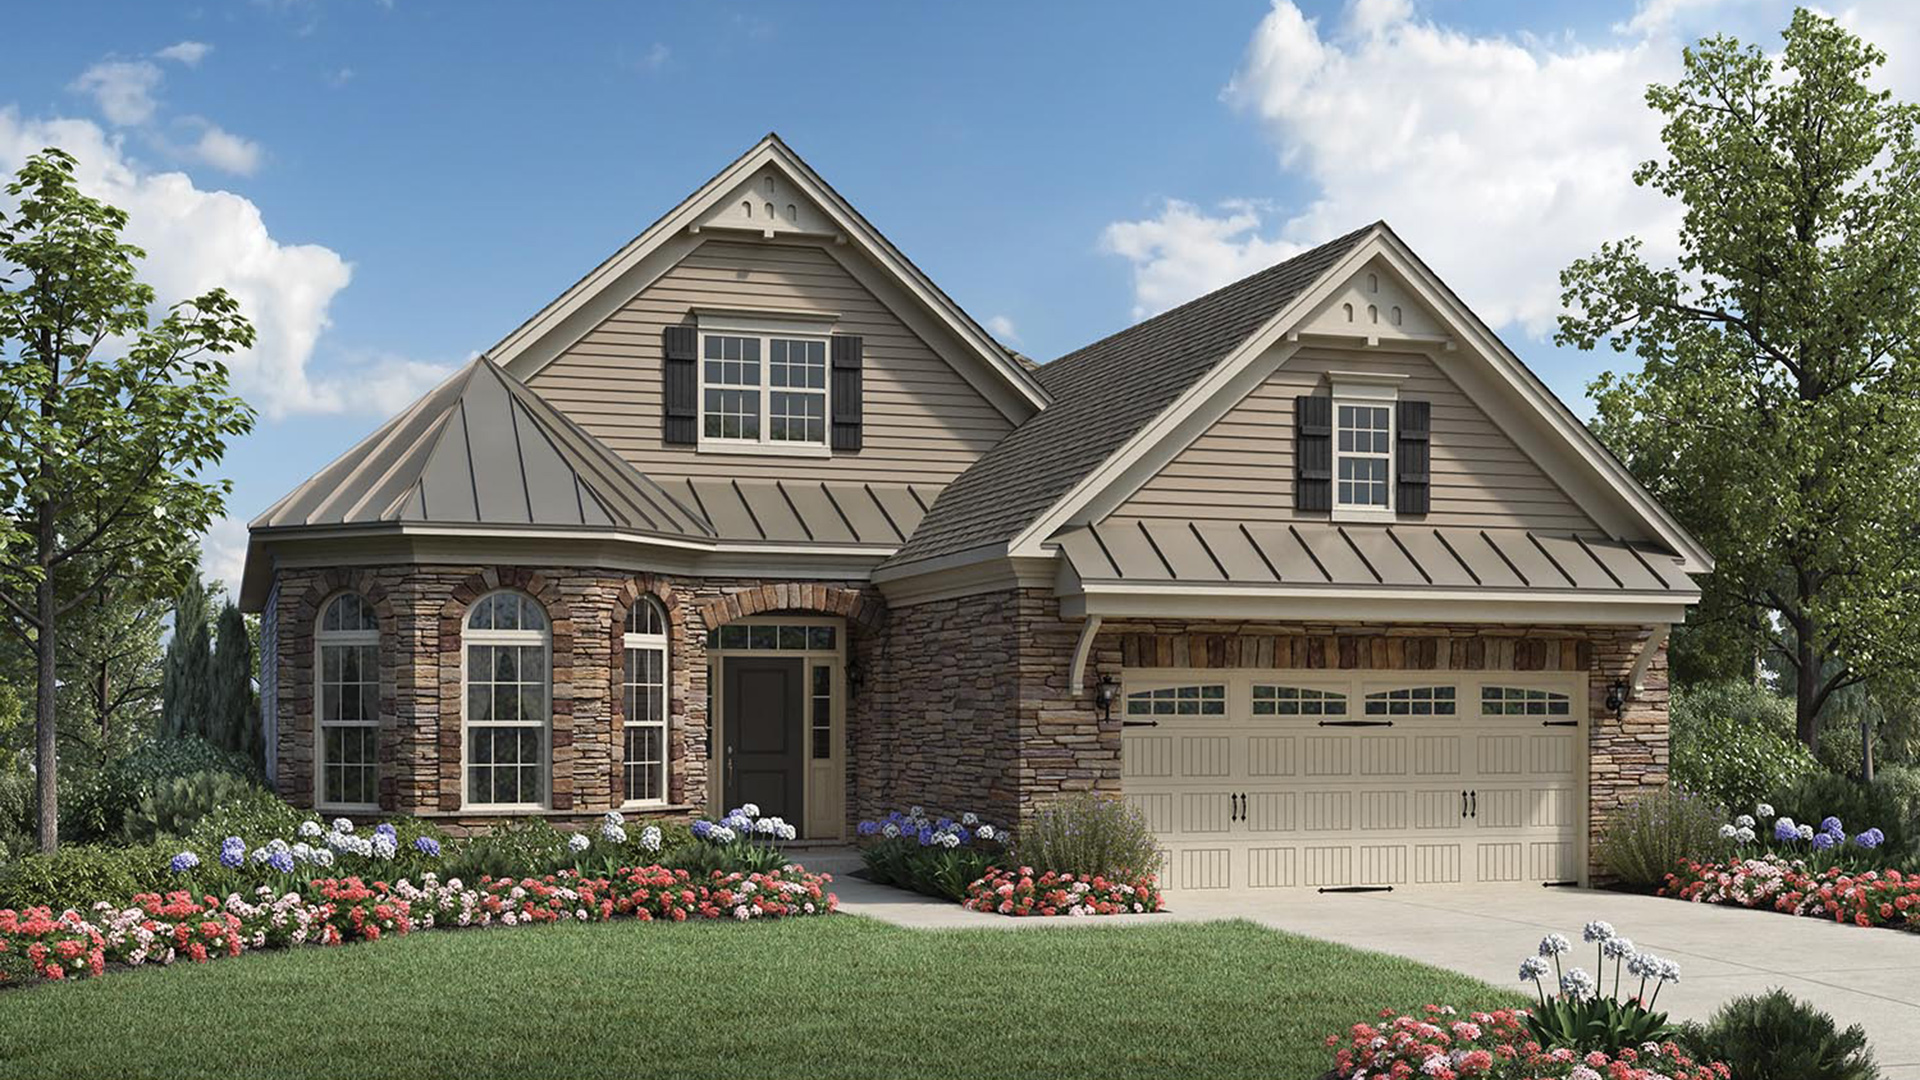 Charlotte nc new homes for sale regency at palisades - 5 bedroom houses for sale in charlotte nc ...